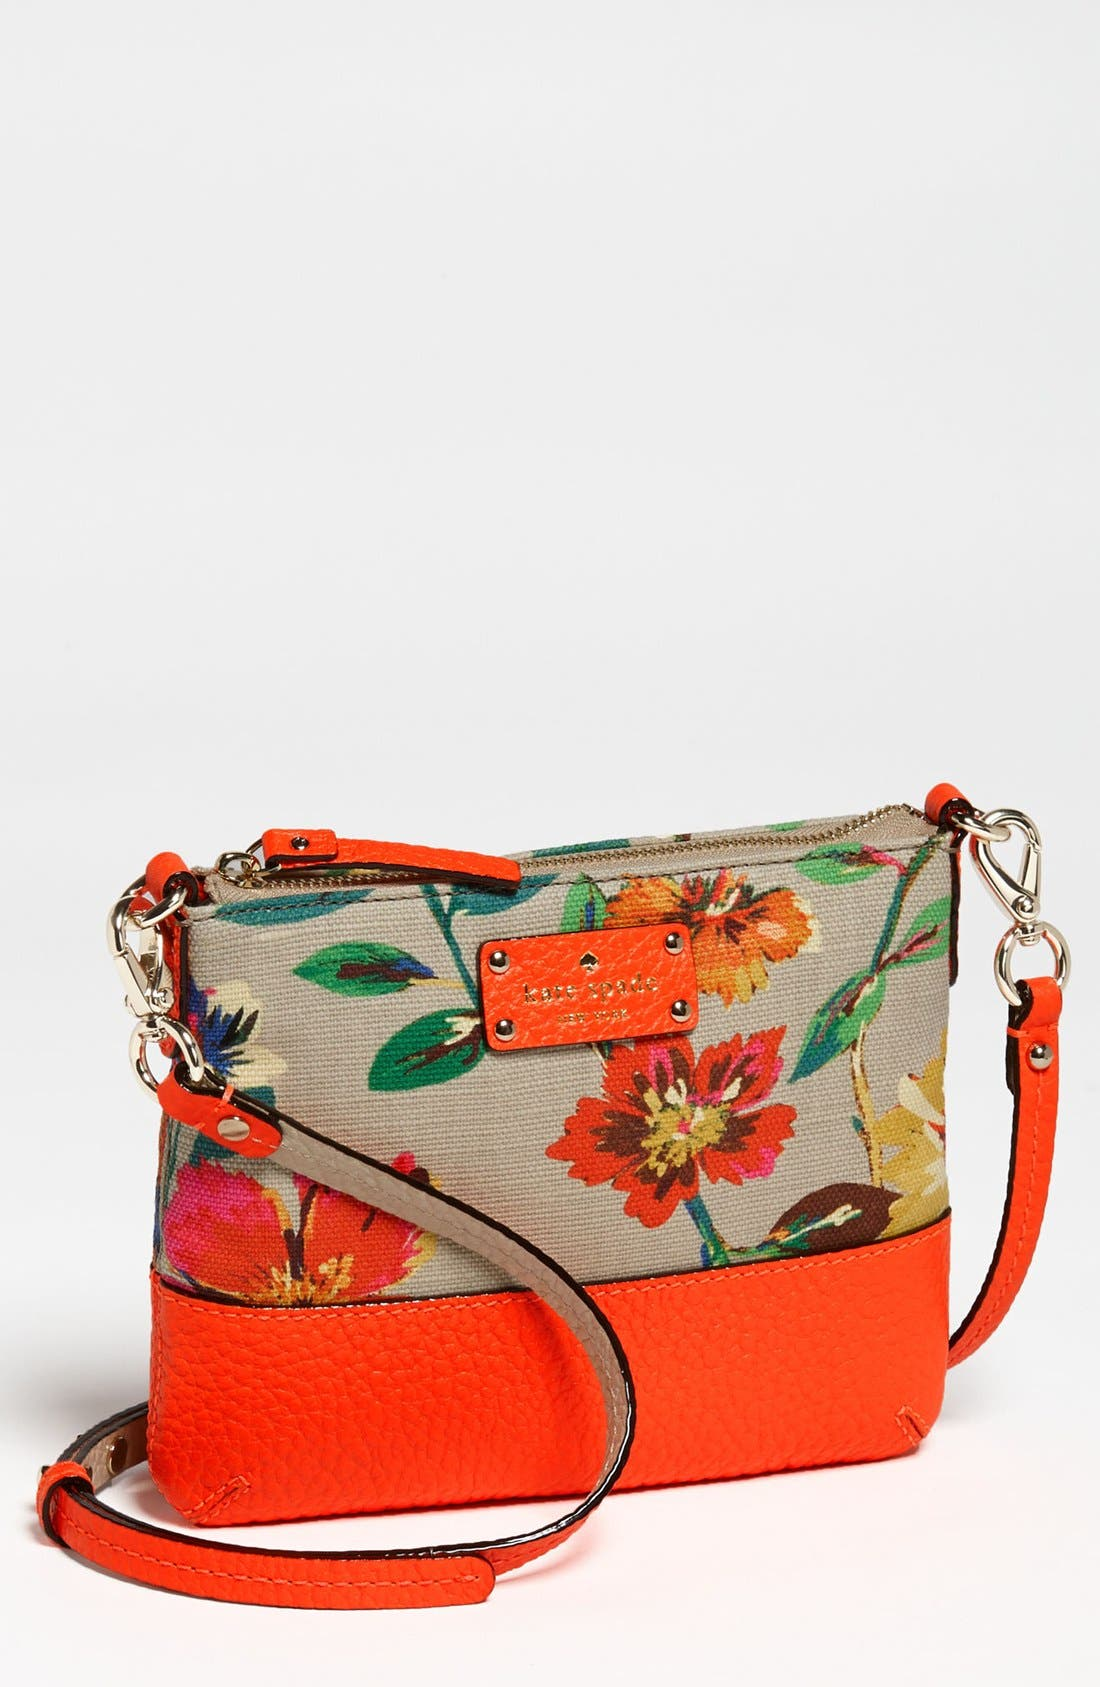 Main Image - kate spade new york 'grove court floral - tenley' crossbody bag